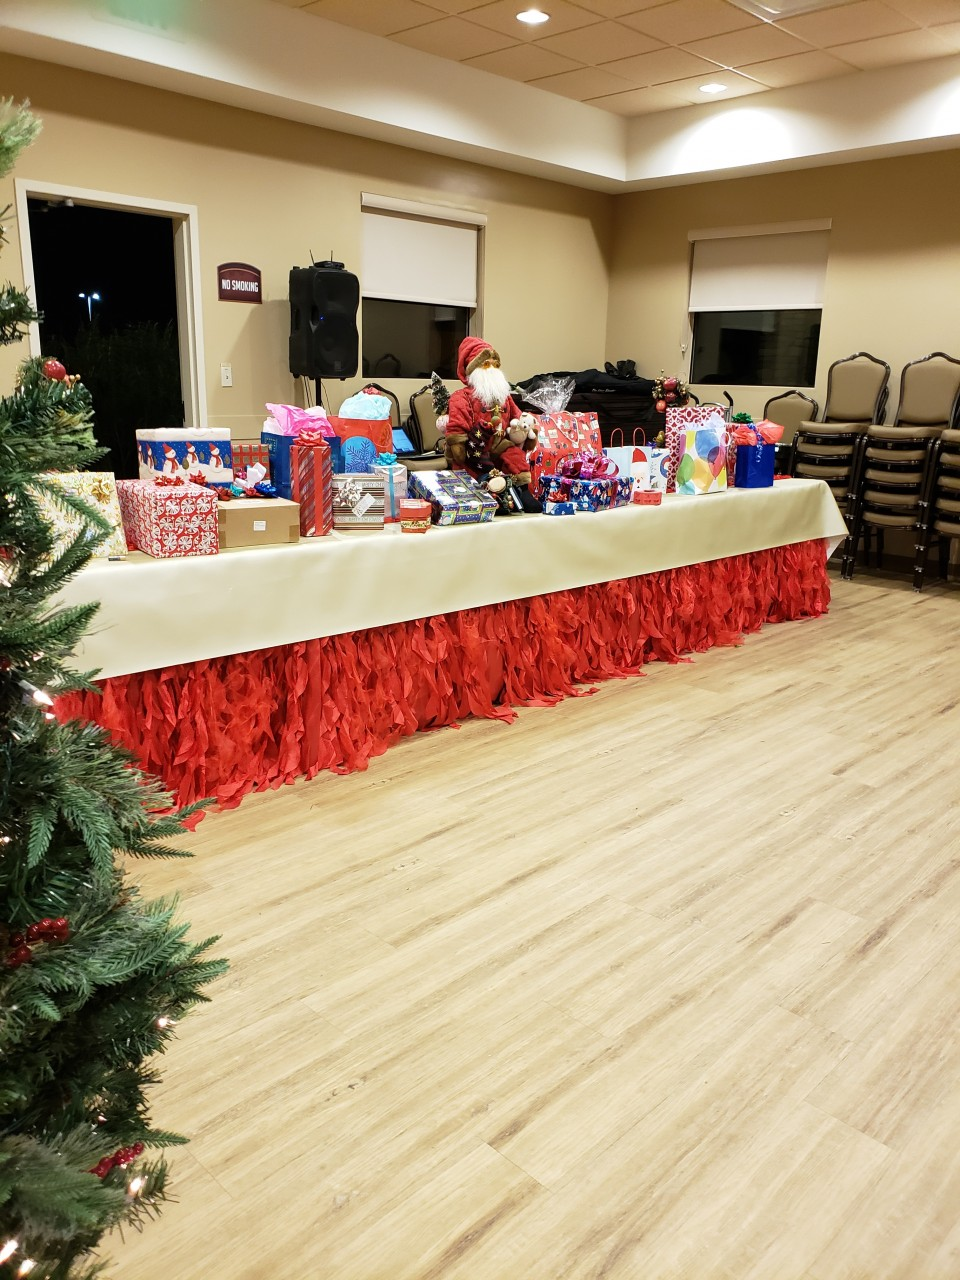 The White Elephant gift exchange is about to commence at the Southern California Pala Casino Christmas Rally.....super fun as family and friends get to steal a treasured gift.......